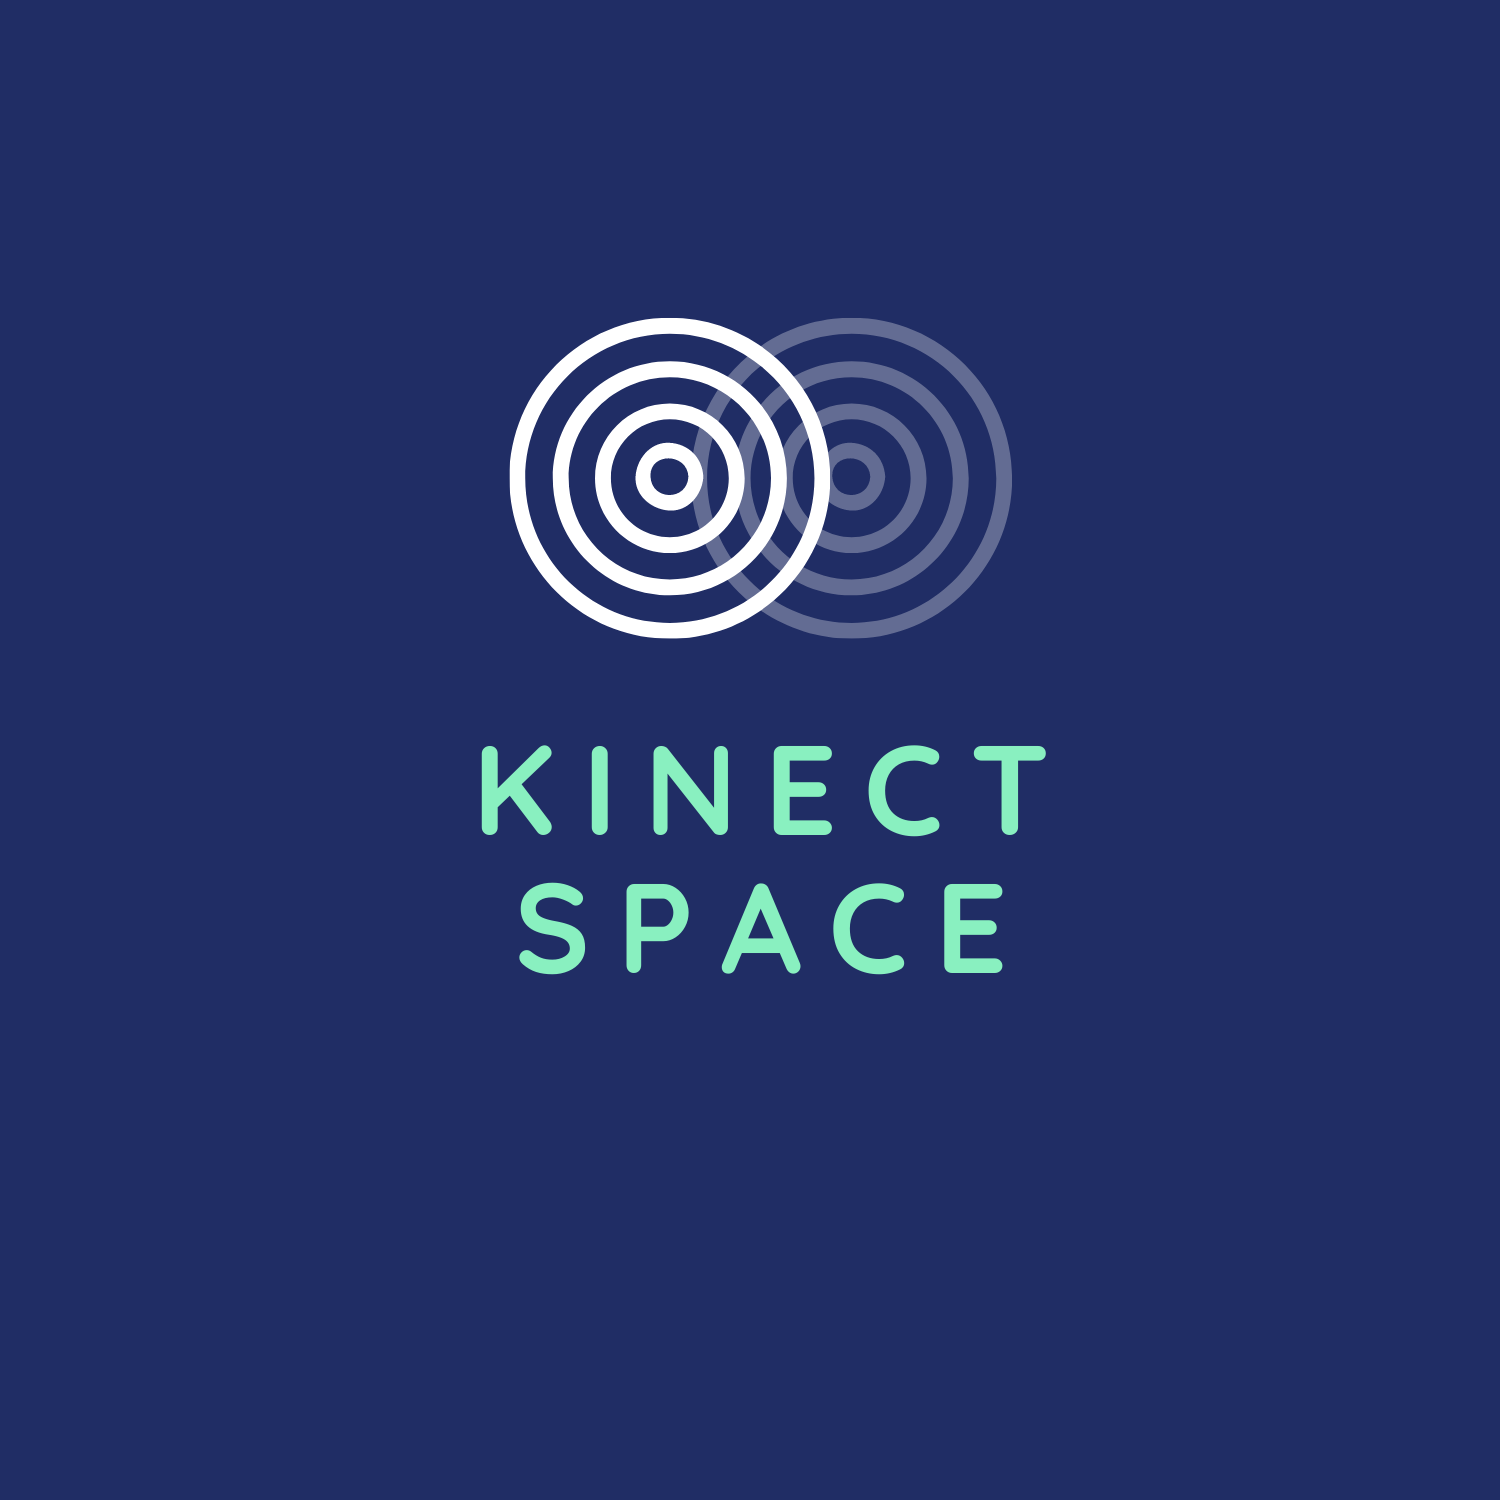 Kinect Space